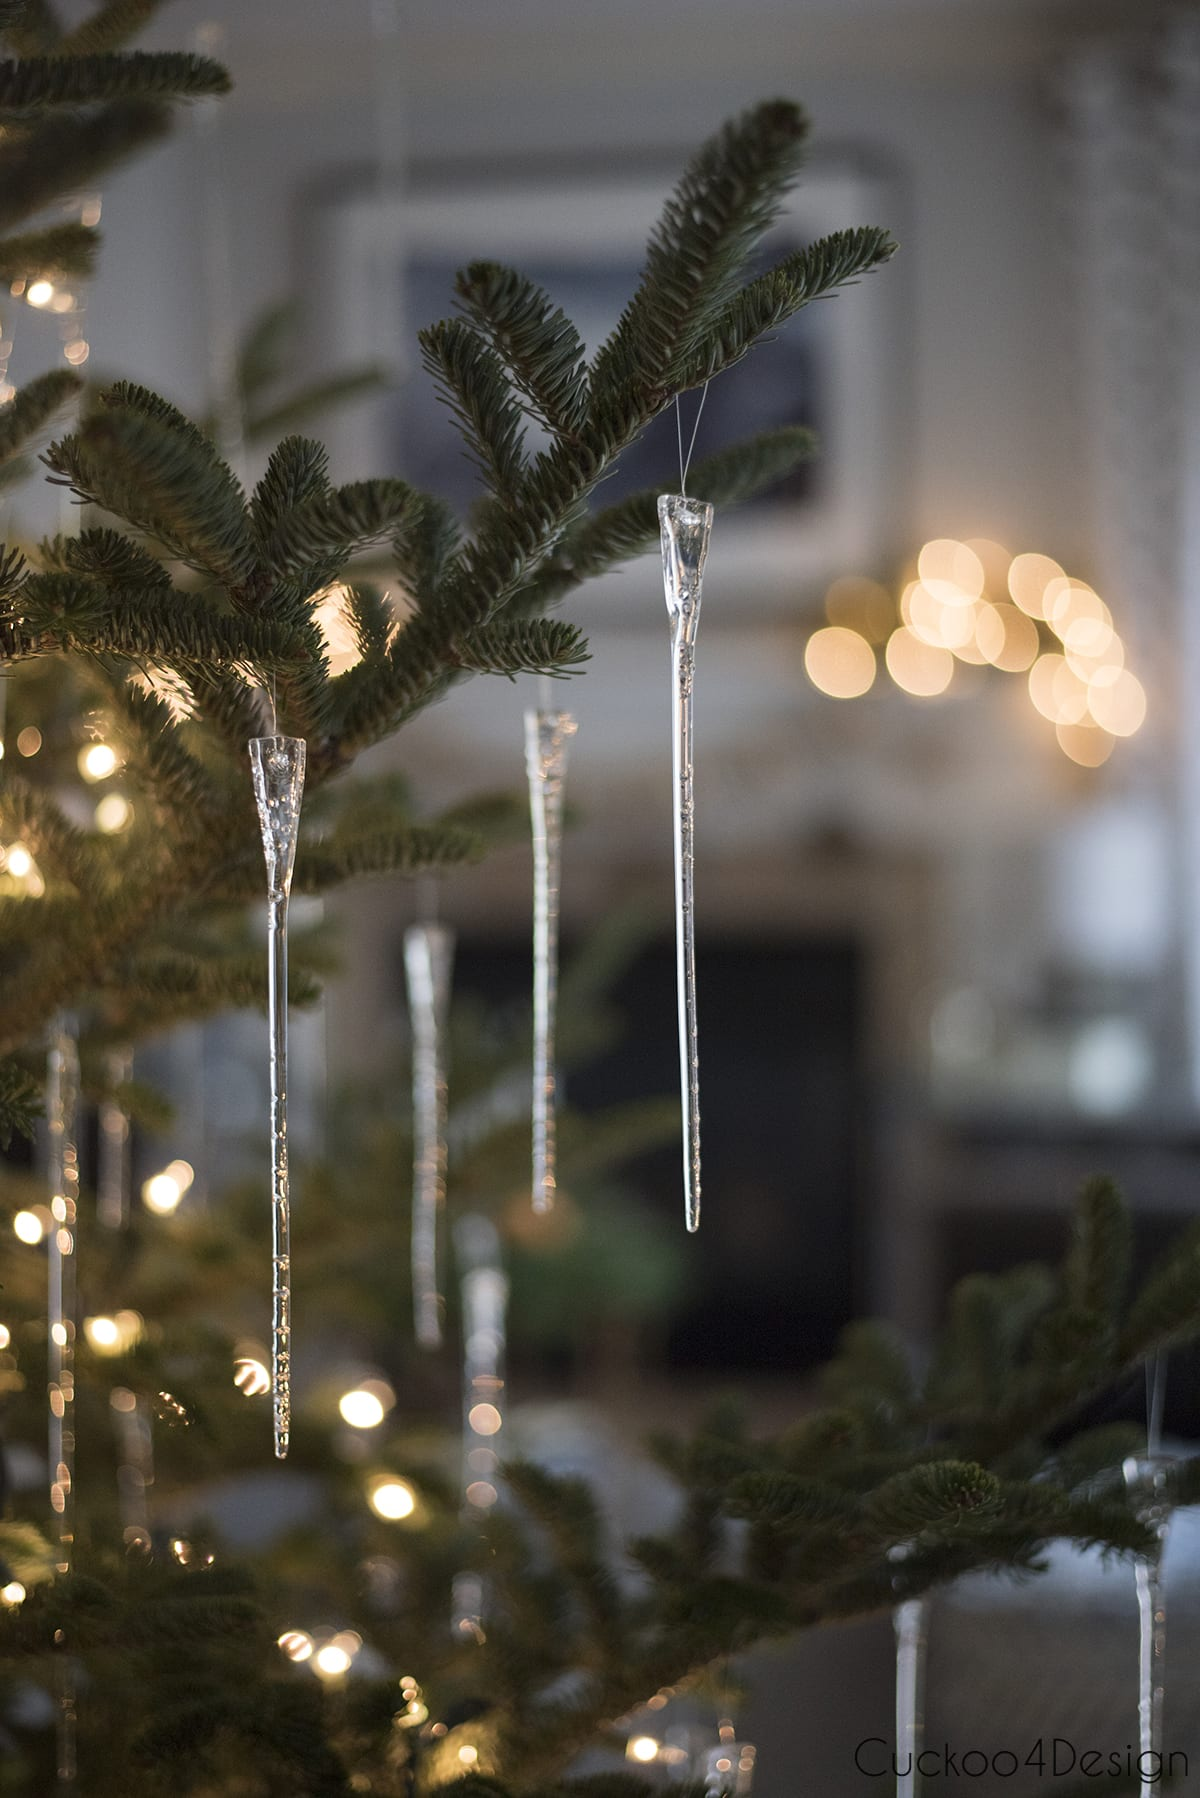 icicles with lights on tree as natural Christmas decorations